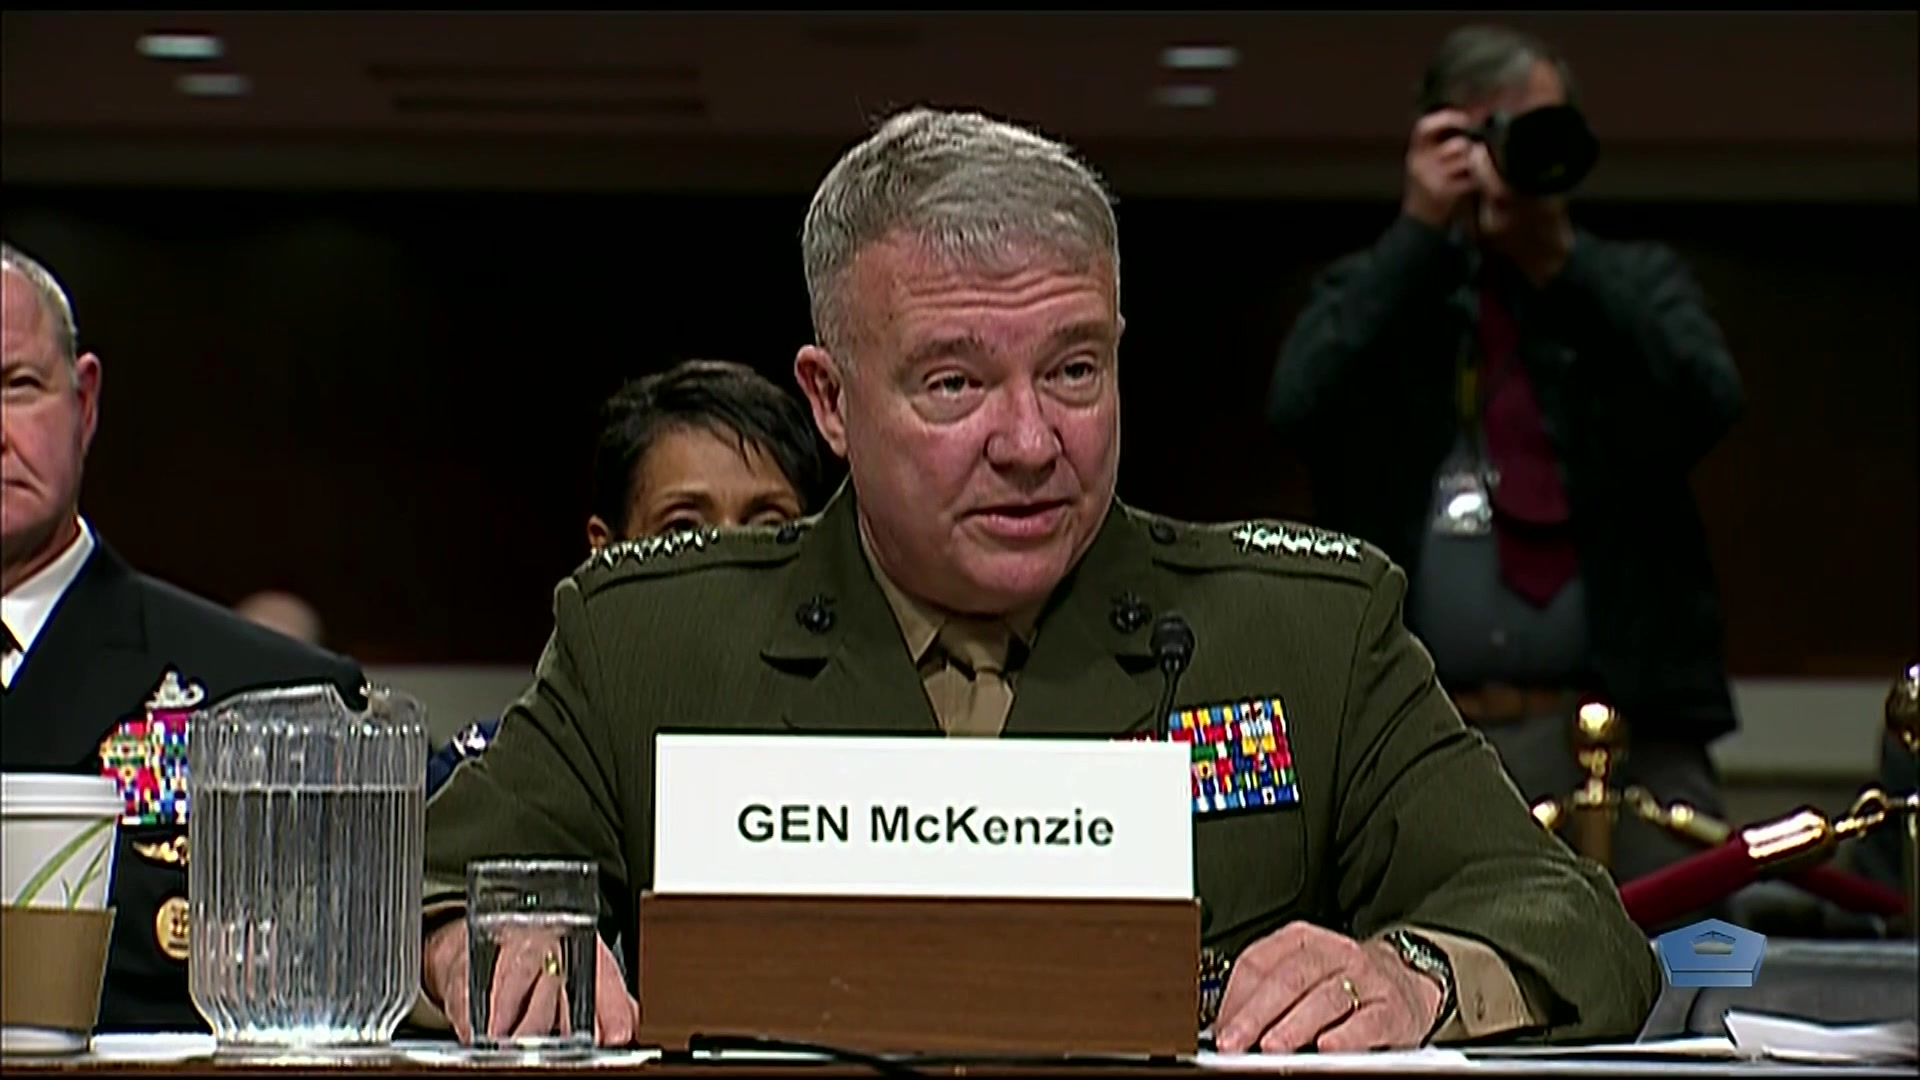 A Marine Corps general sits at a table.